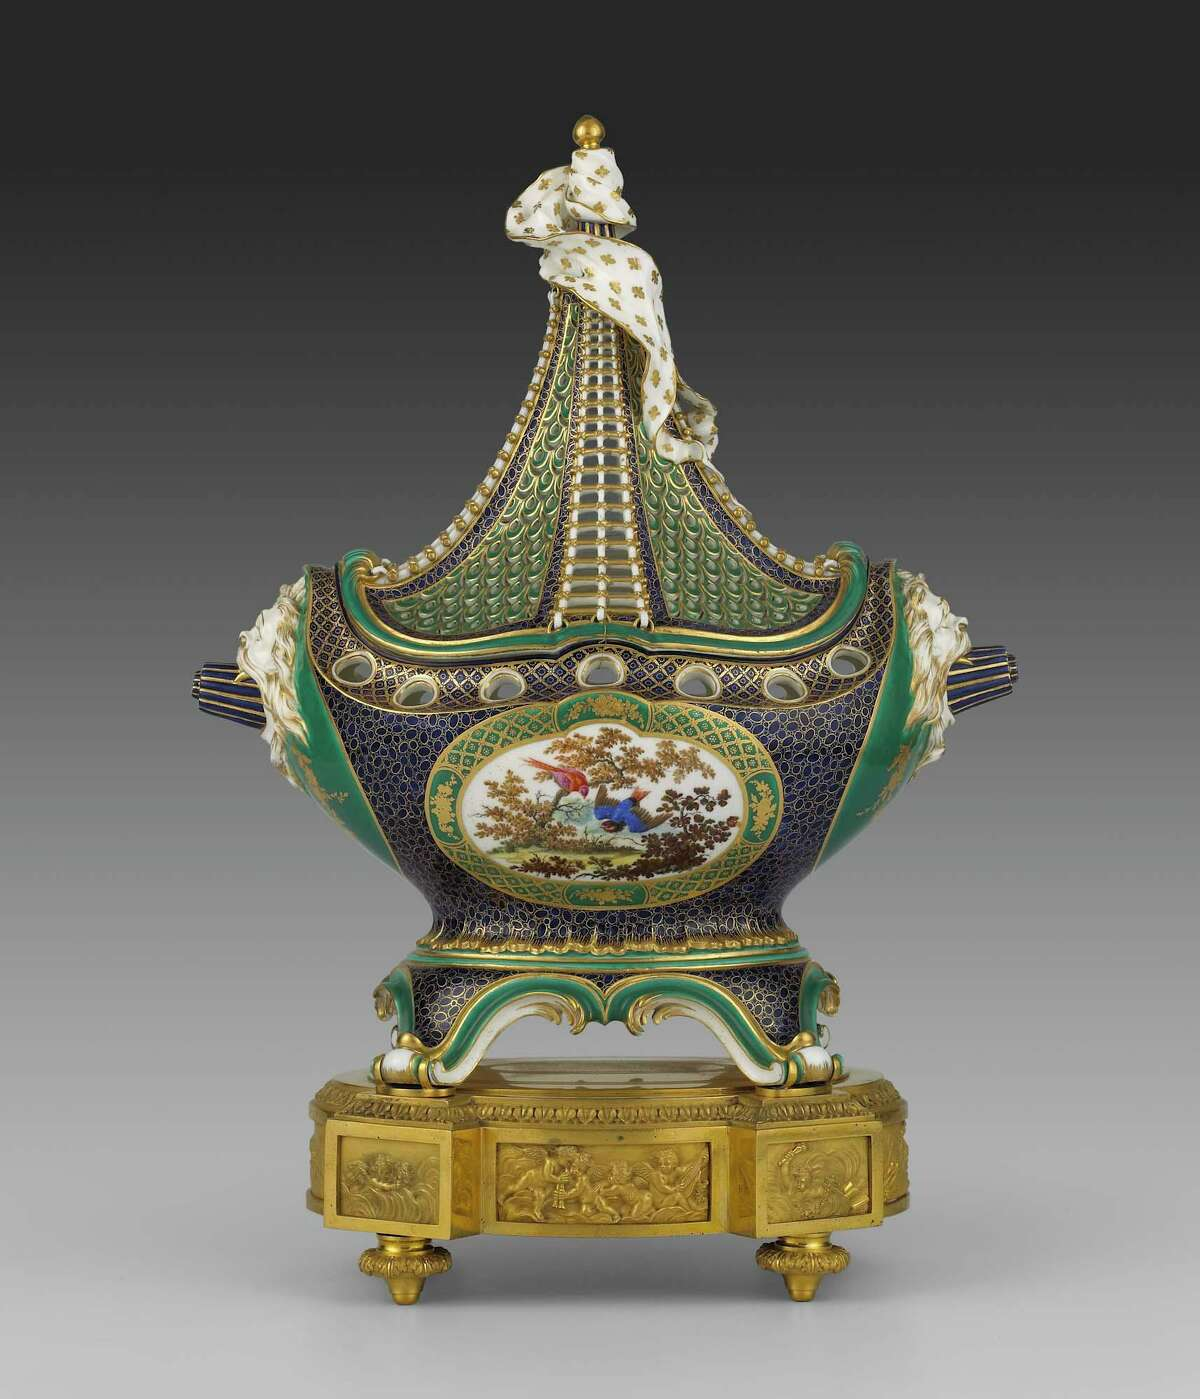 A potpourri vase in the shape of a masted ship, which is one of a set of three, circa 1759, from The Frick Collection.